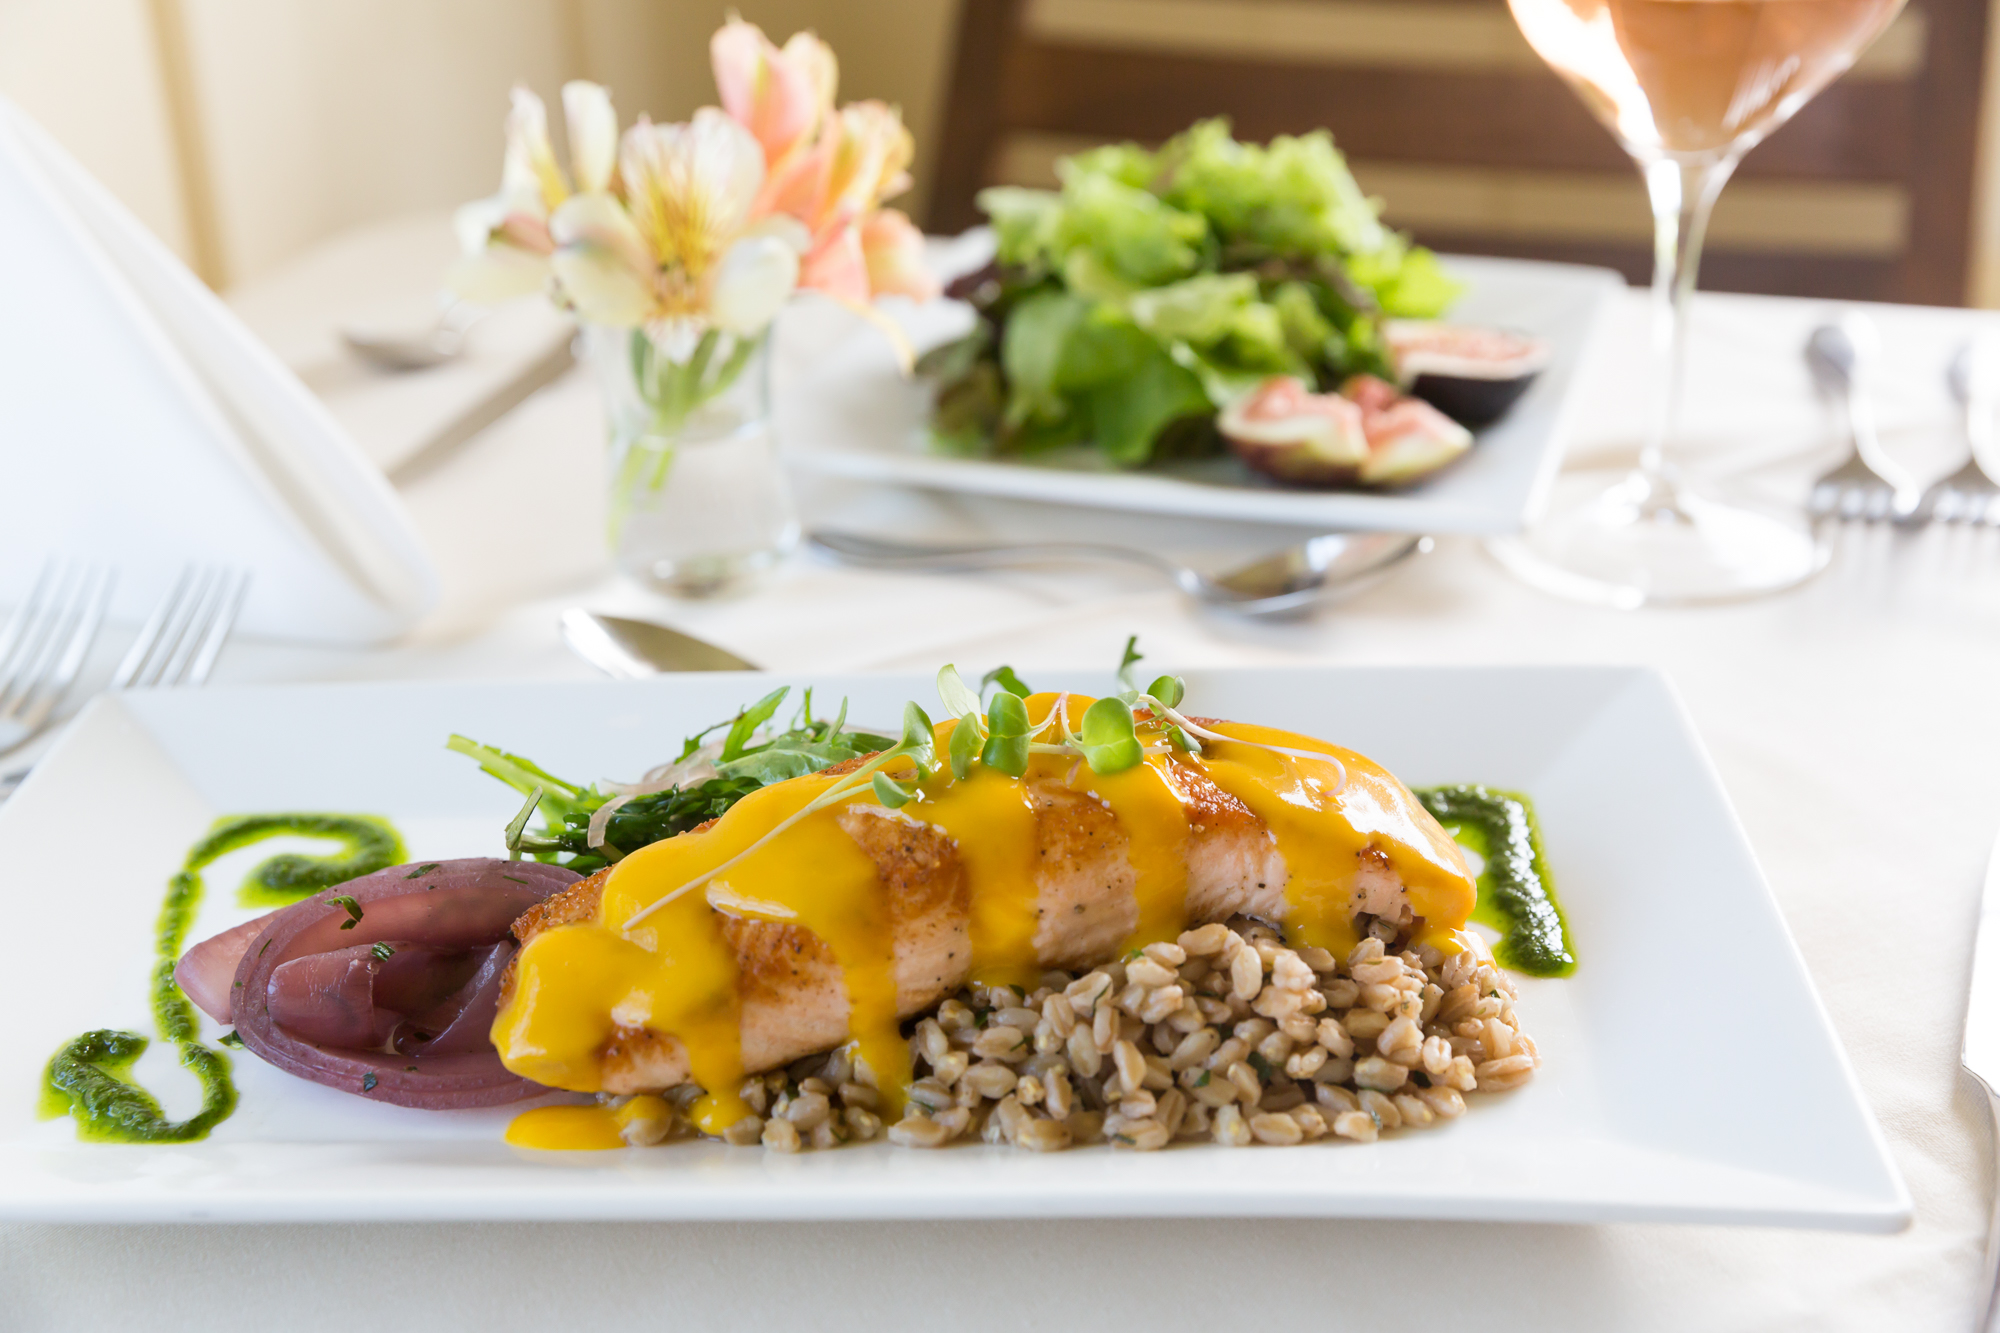 PERSEPHONE  |  Apricot glazed local King salmon with herbed farro, marinated-roasted onions, arugula salad, and fried shallots.